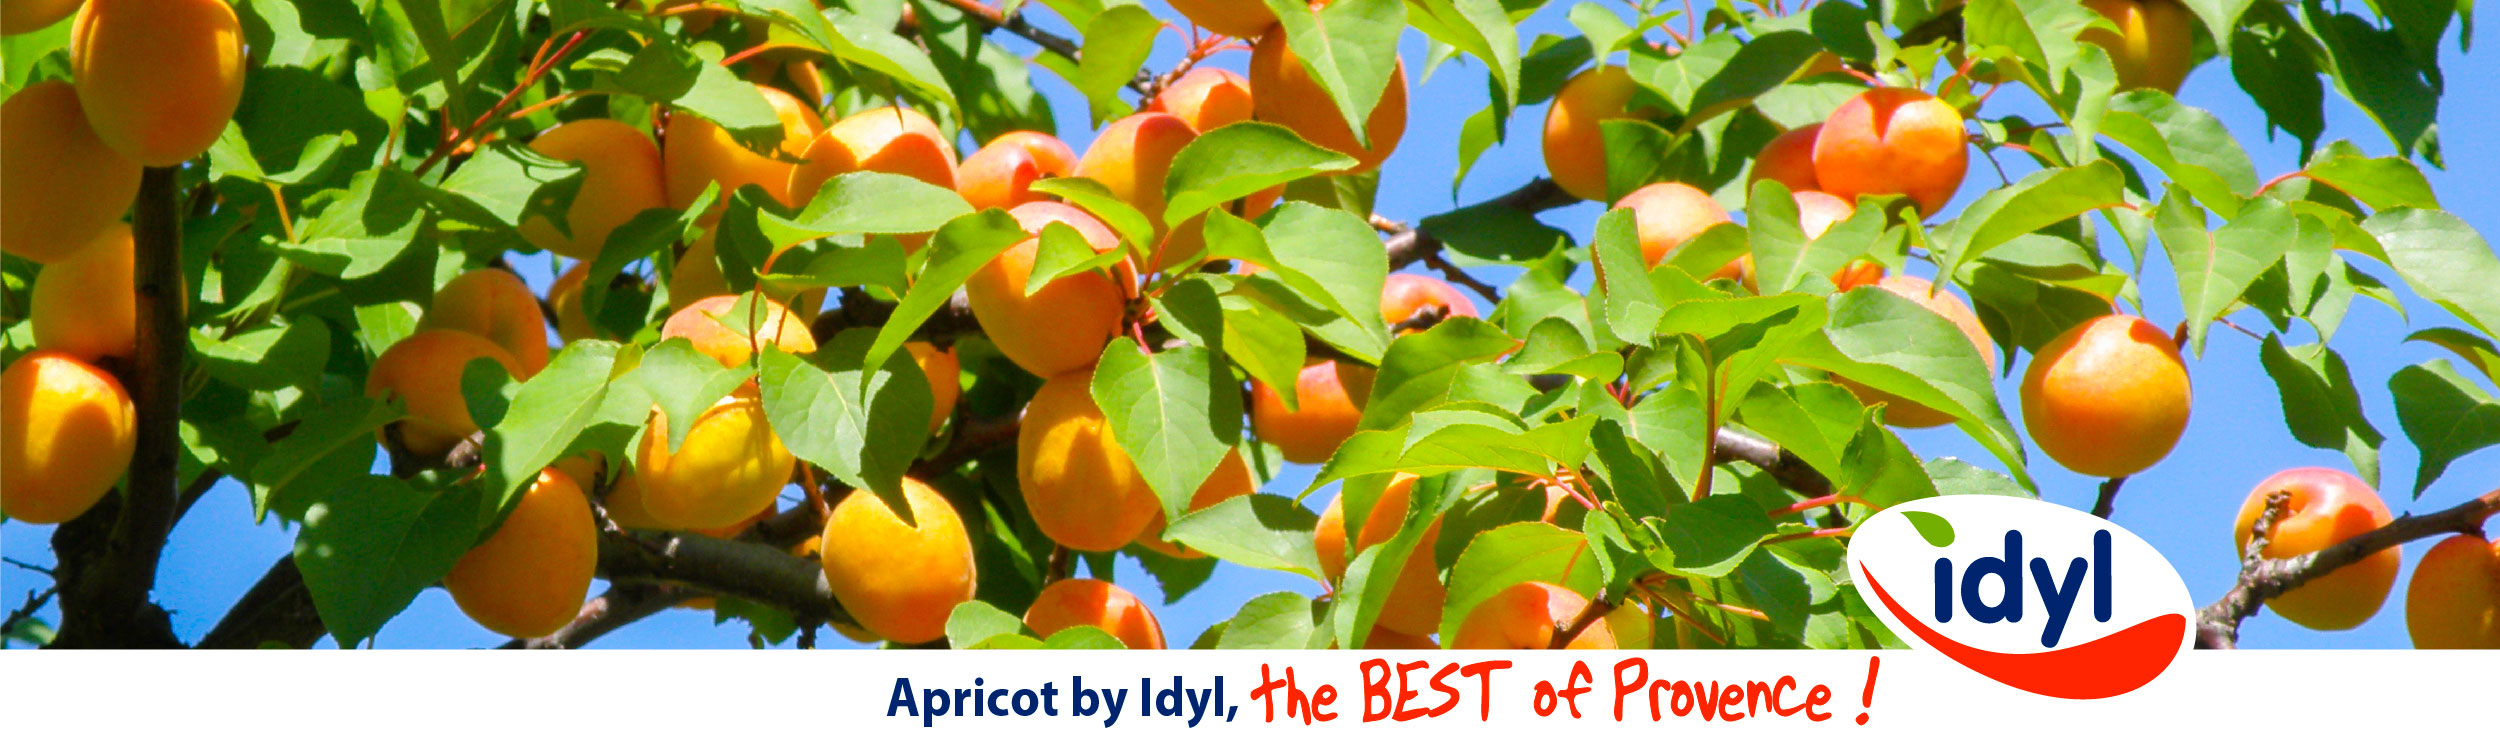 Apricot by idyl the BEST of Provence